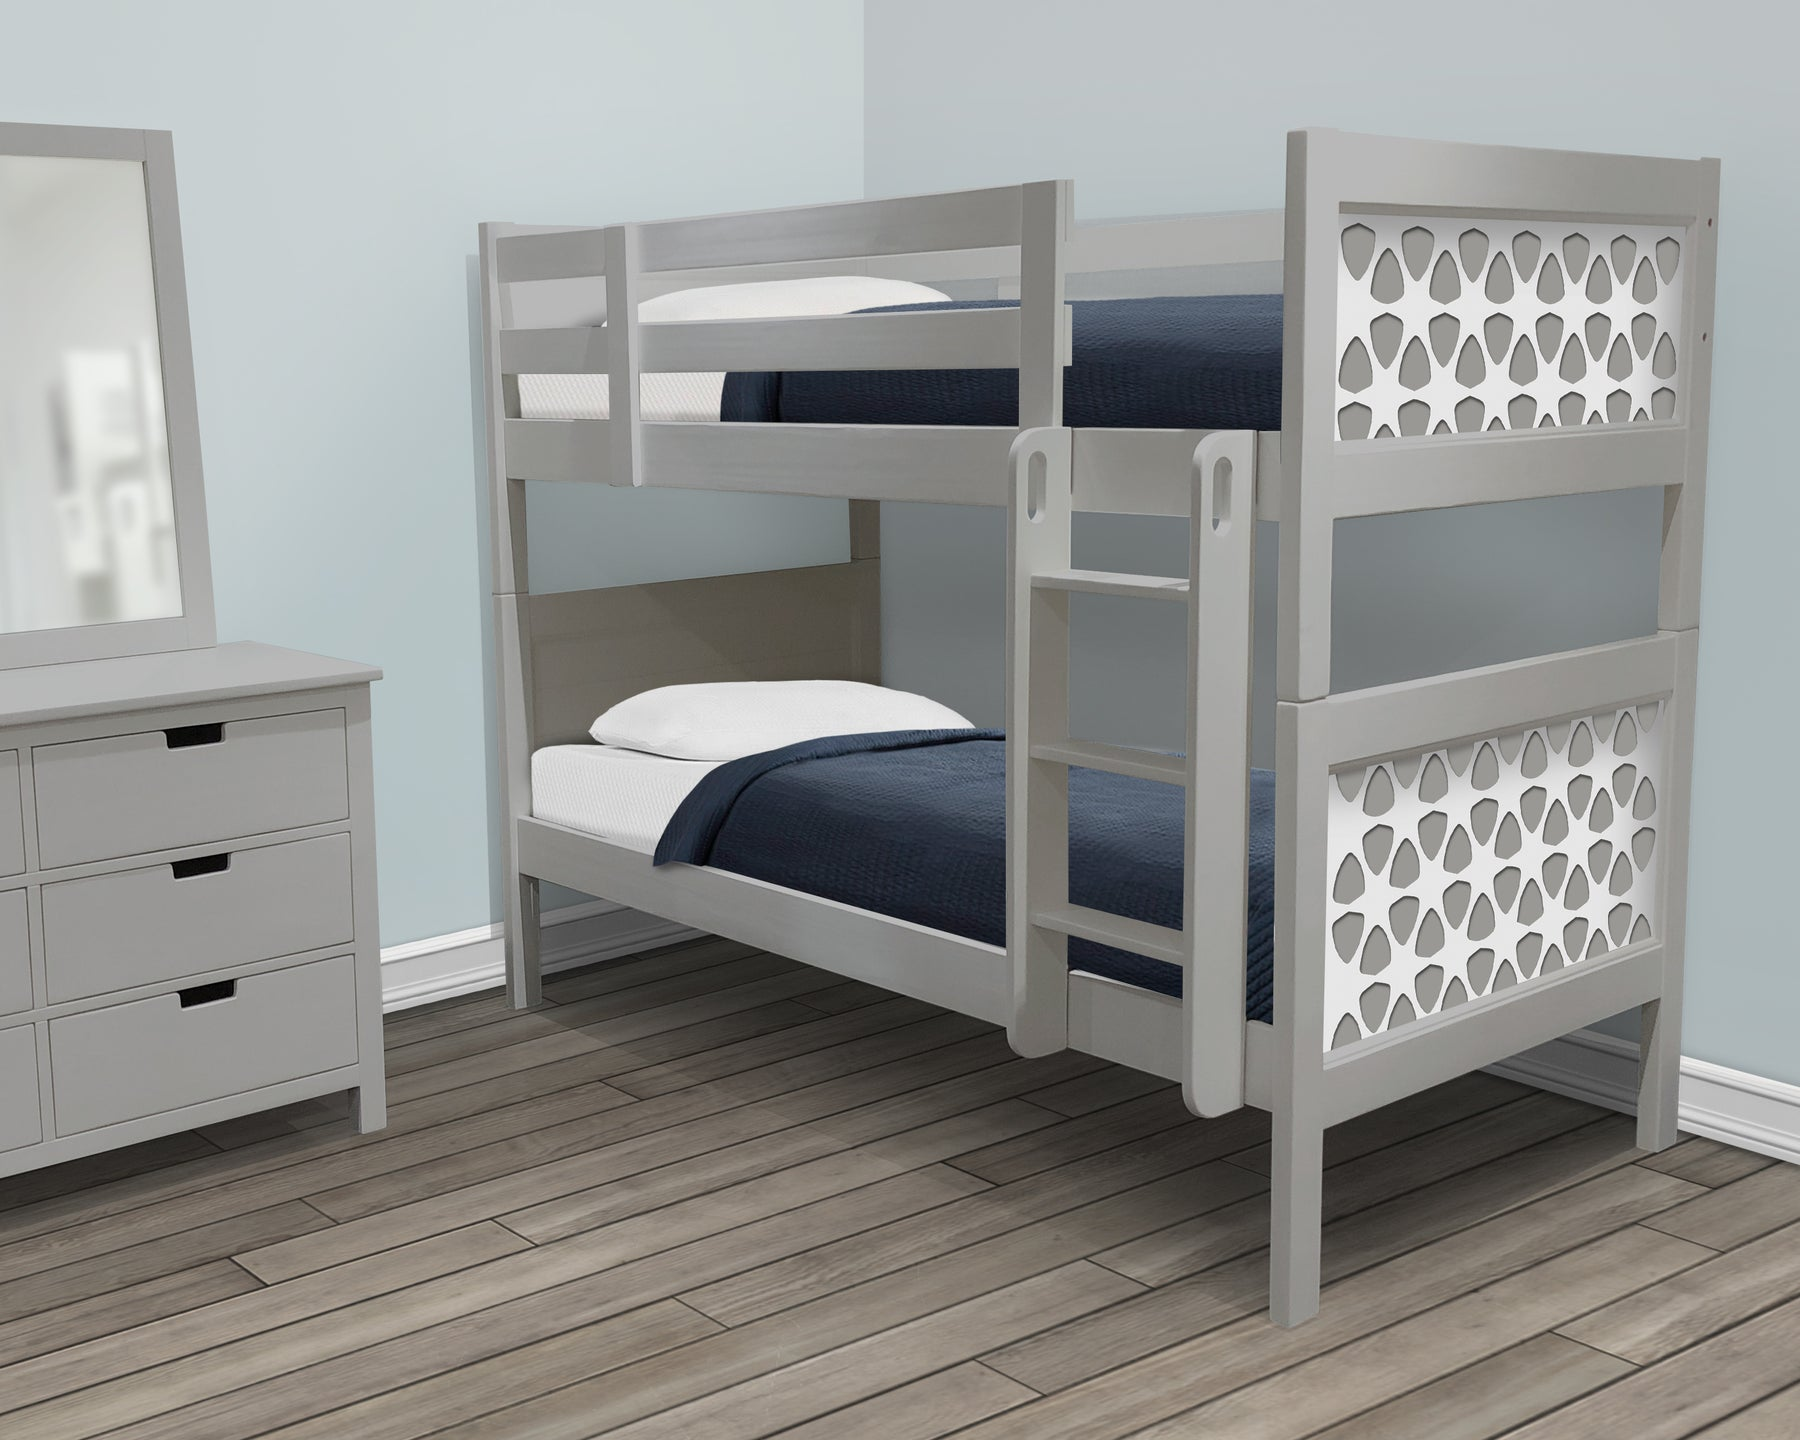 P'kolino Nesto Bunk Beds - Fully customizable beds. The no-nonsense design of our Nesto Collection was worth all the hard work when the result is a timeless look.